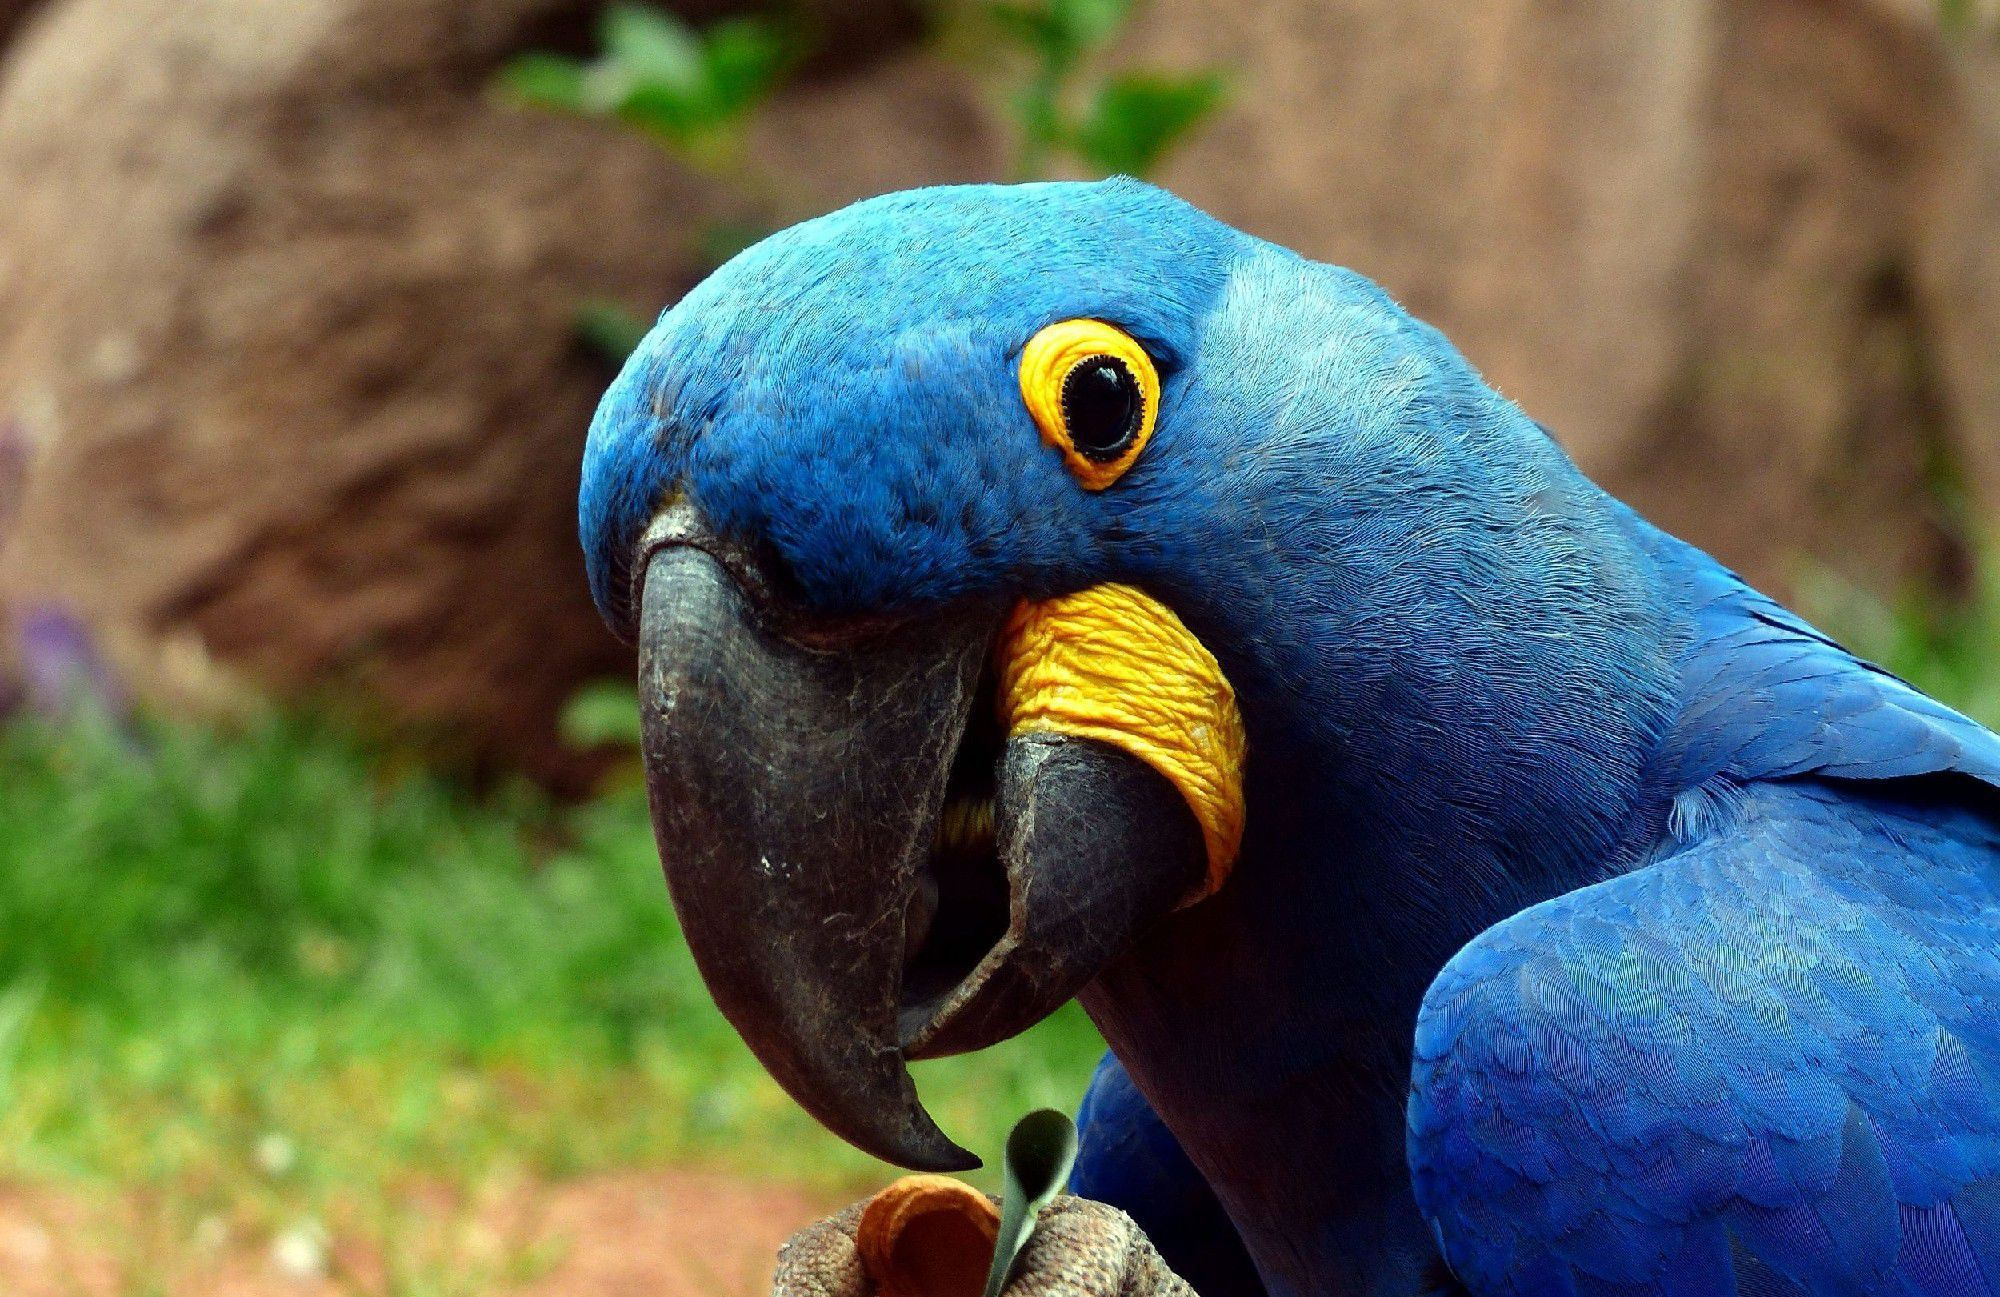 Blue Parrot Wallpapers Backgrounds 2000x1297